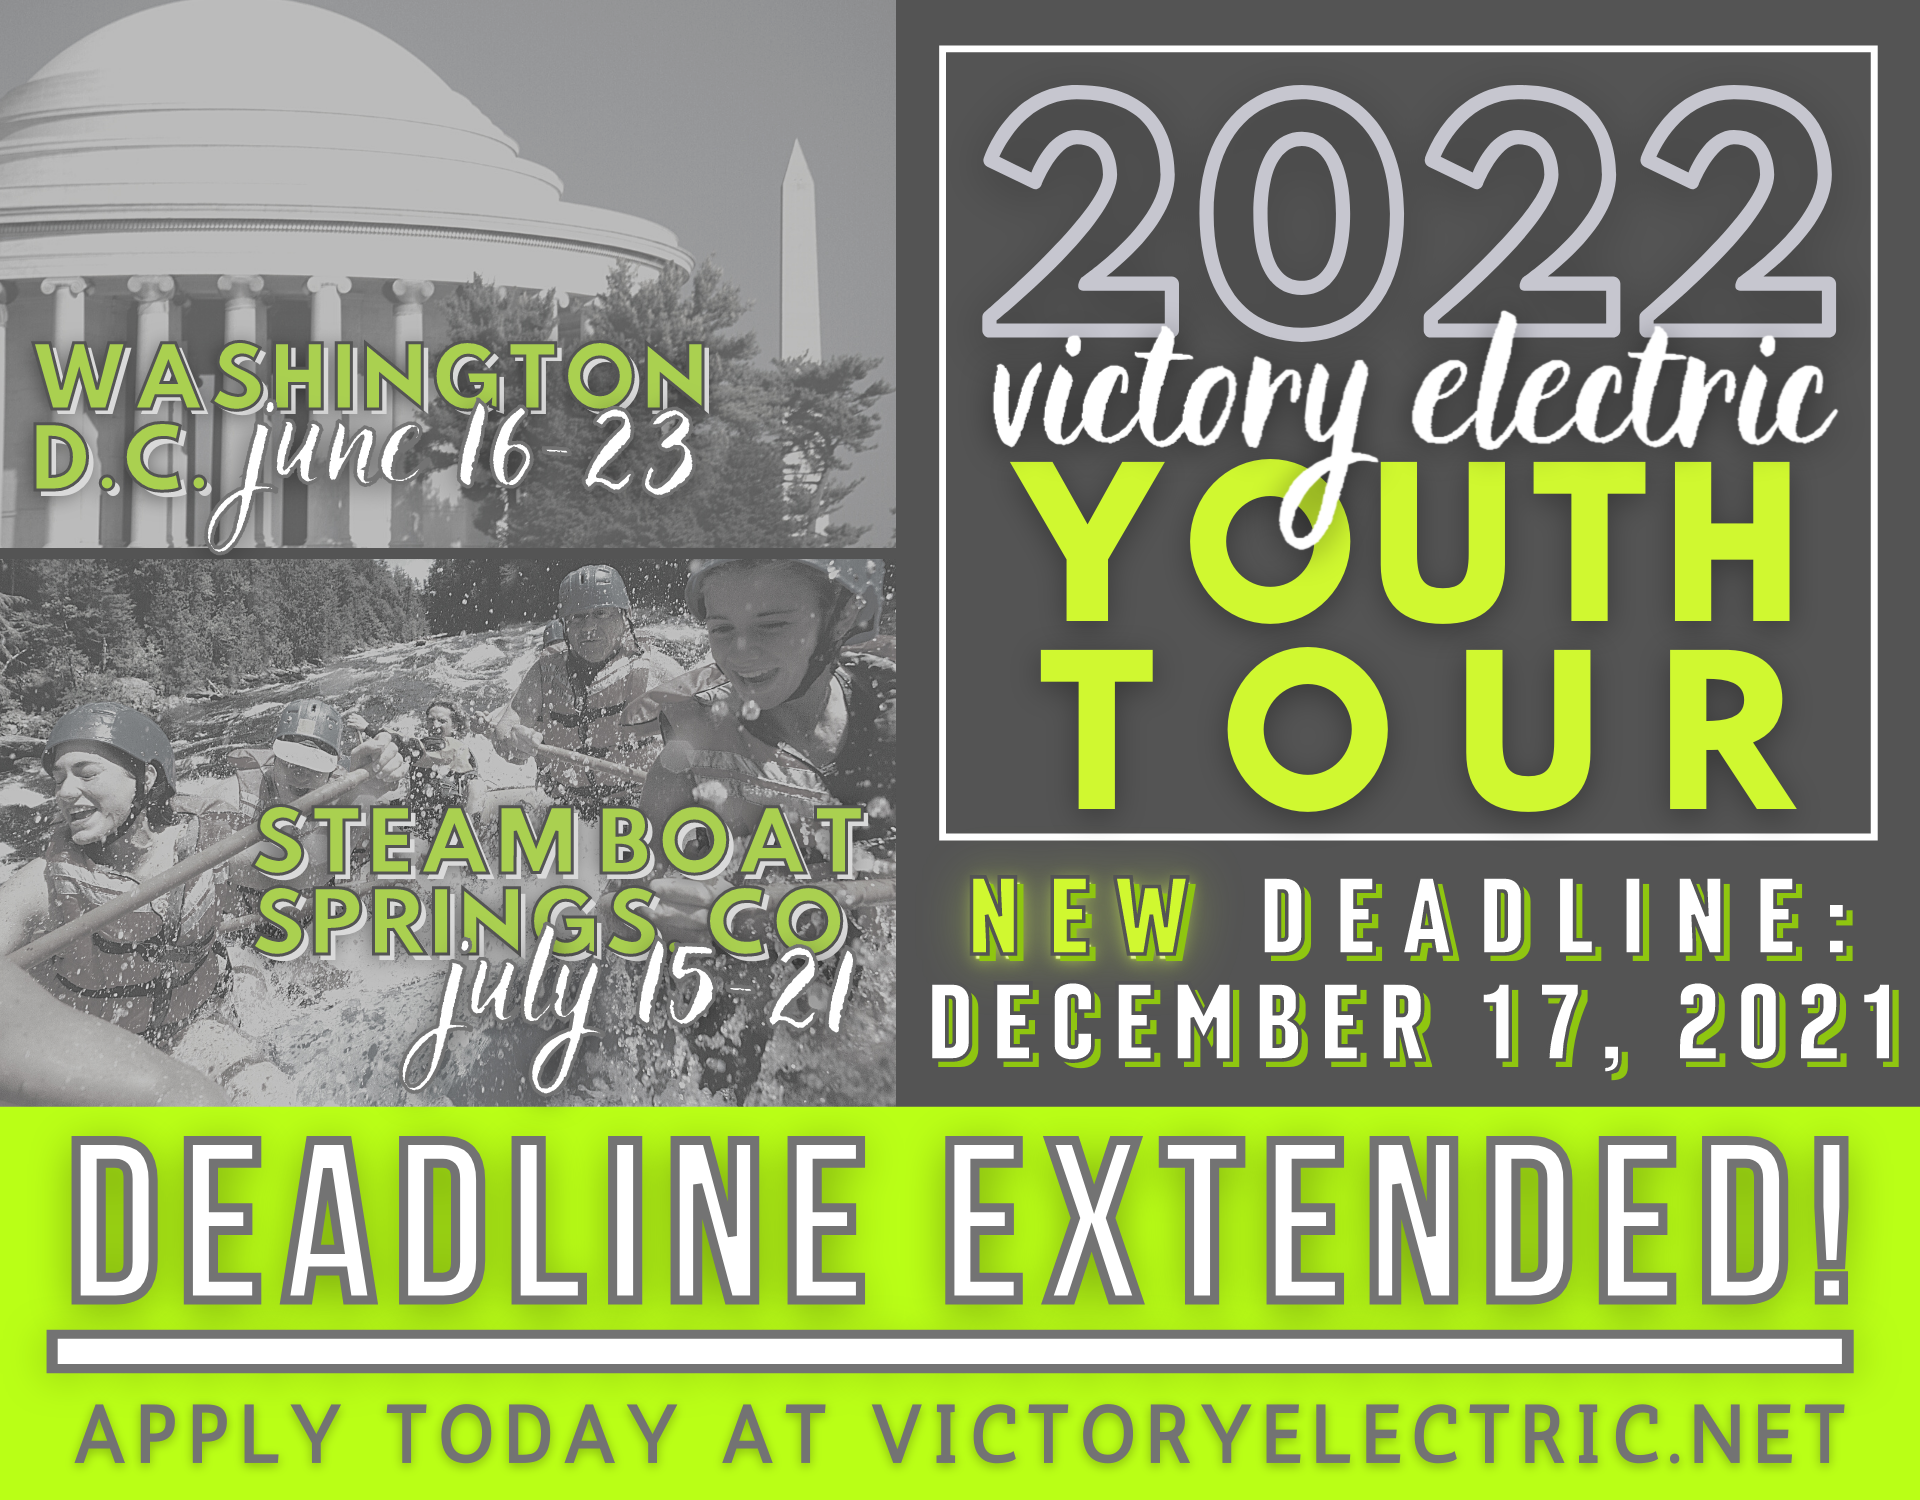 https://www.victoryelectric.net/sites/victoryelectric/files/revslider/image/2022%20YT%20Website%20Extended%20Deadline%21%20%281%29.png